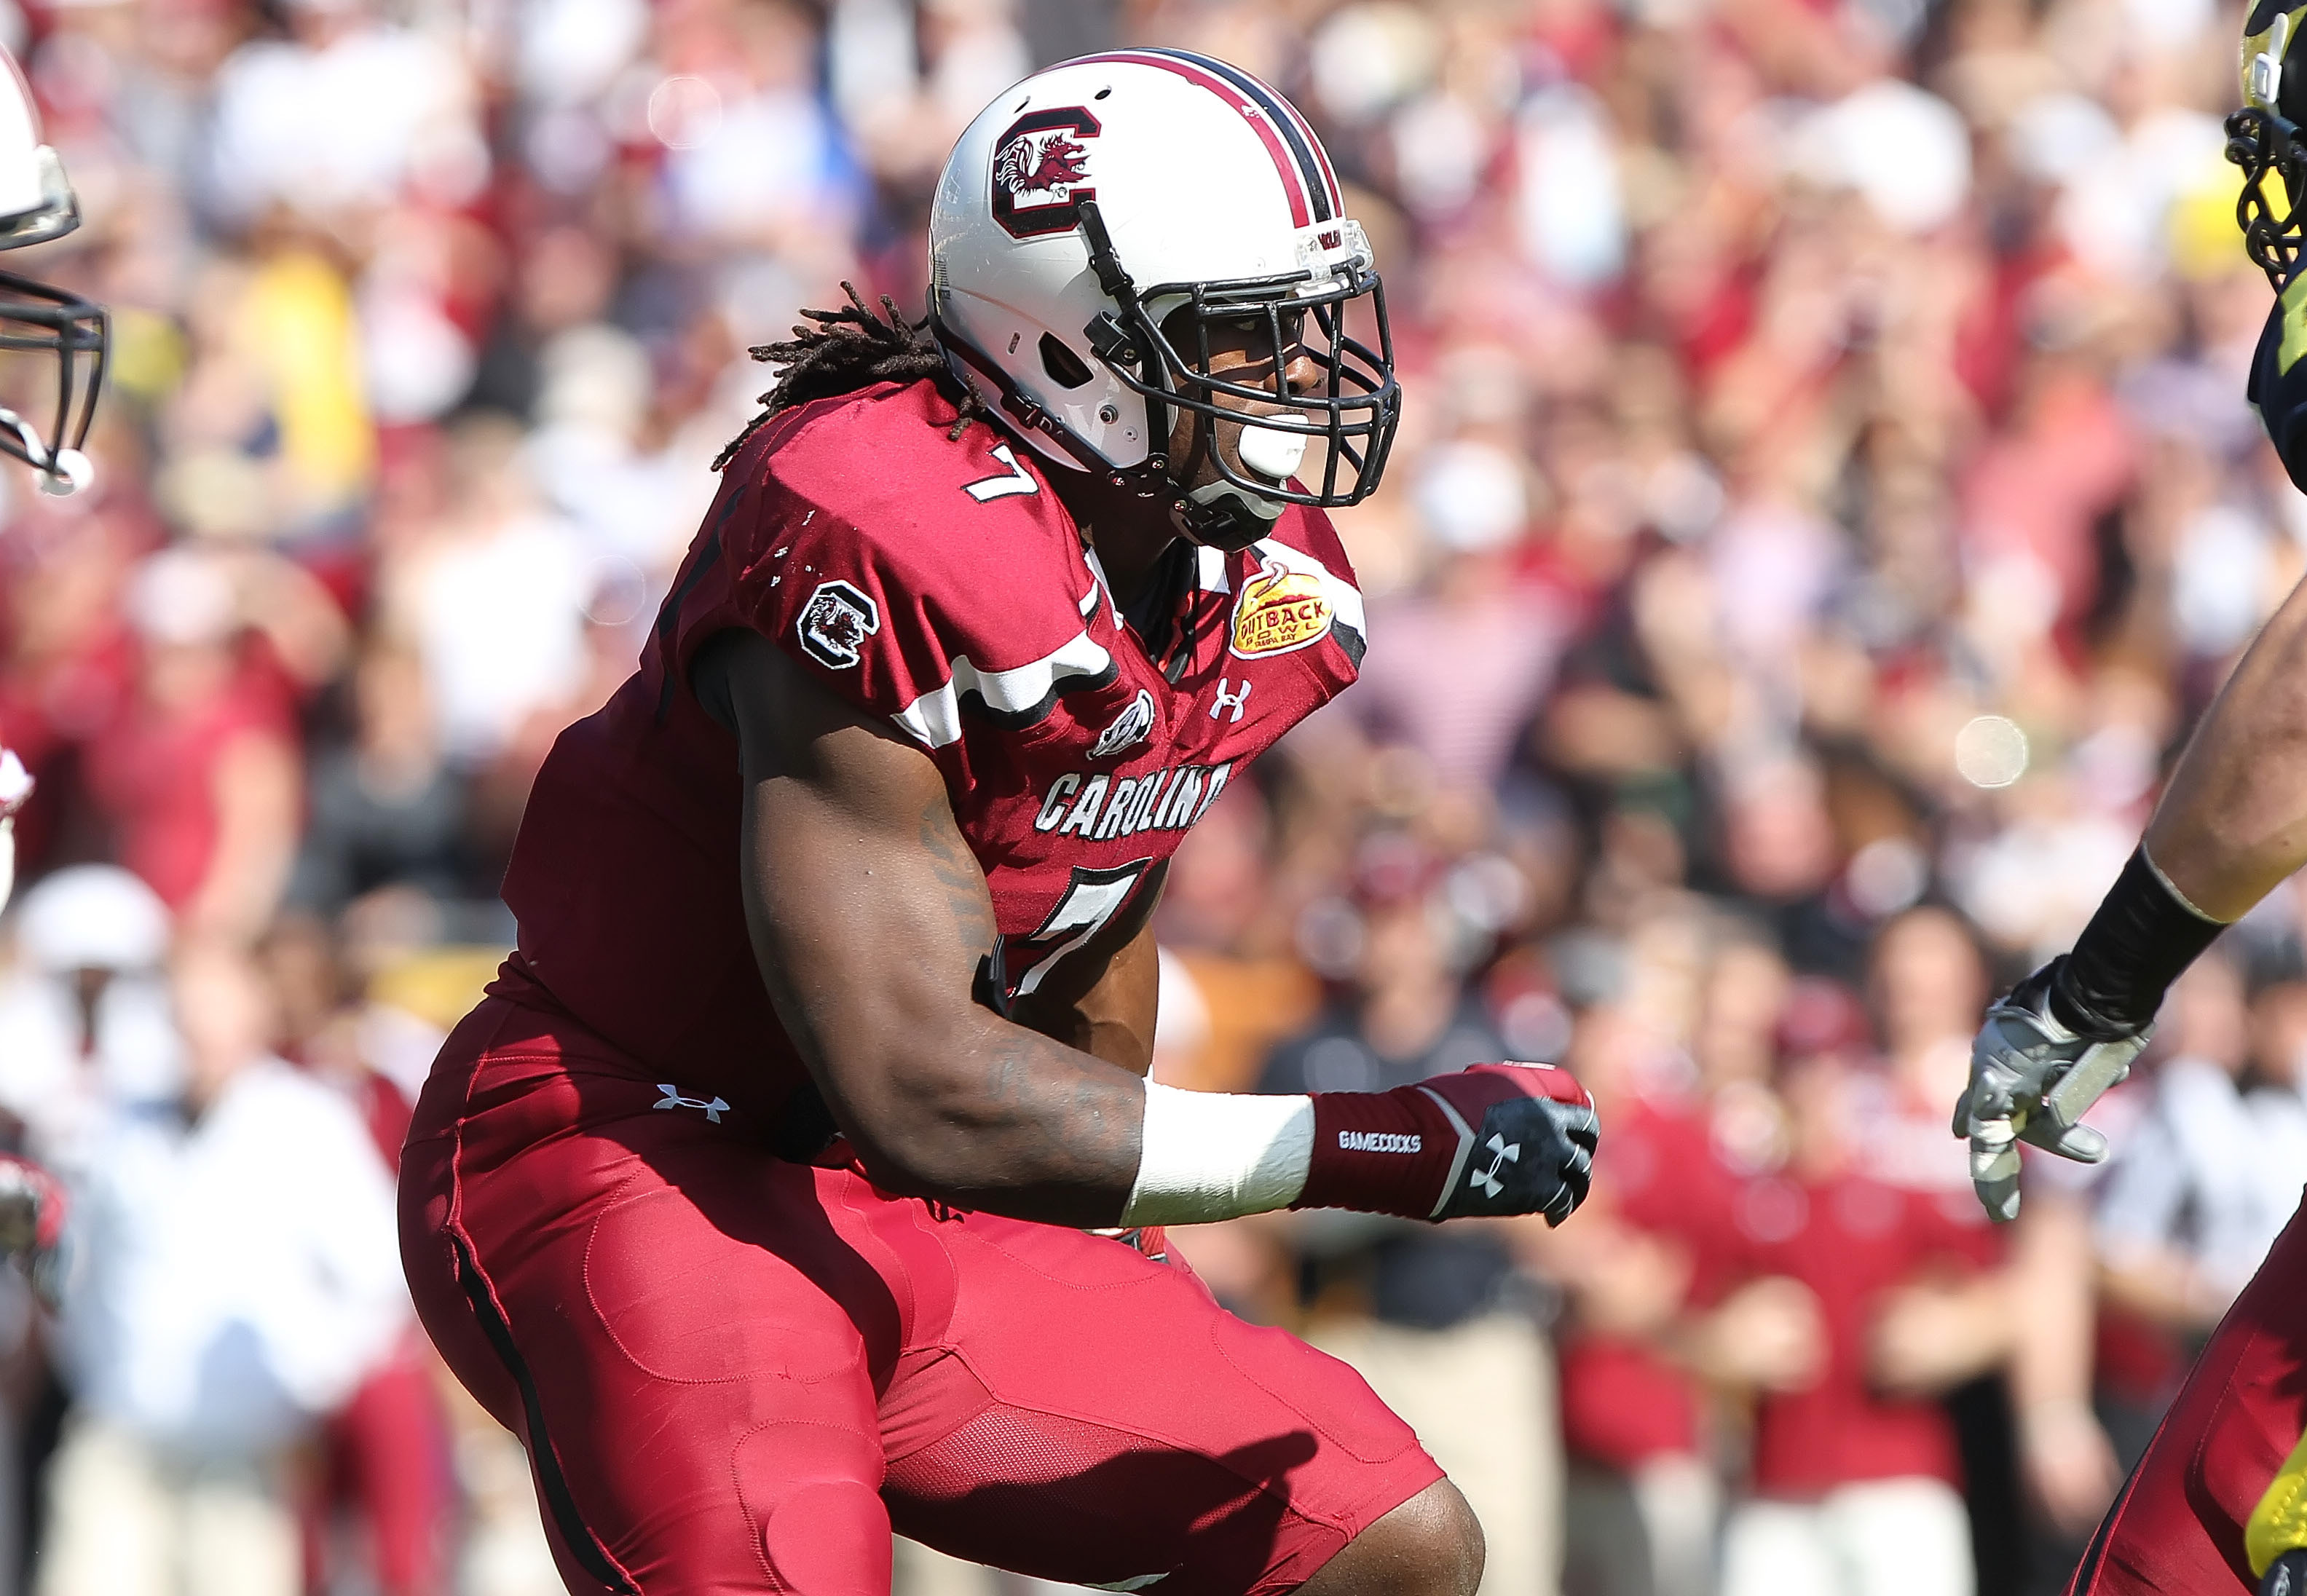 Jadeveon Clowney finished the 2012 season with 13 sacks. (USA Today Sports)